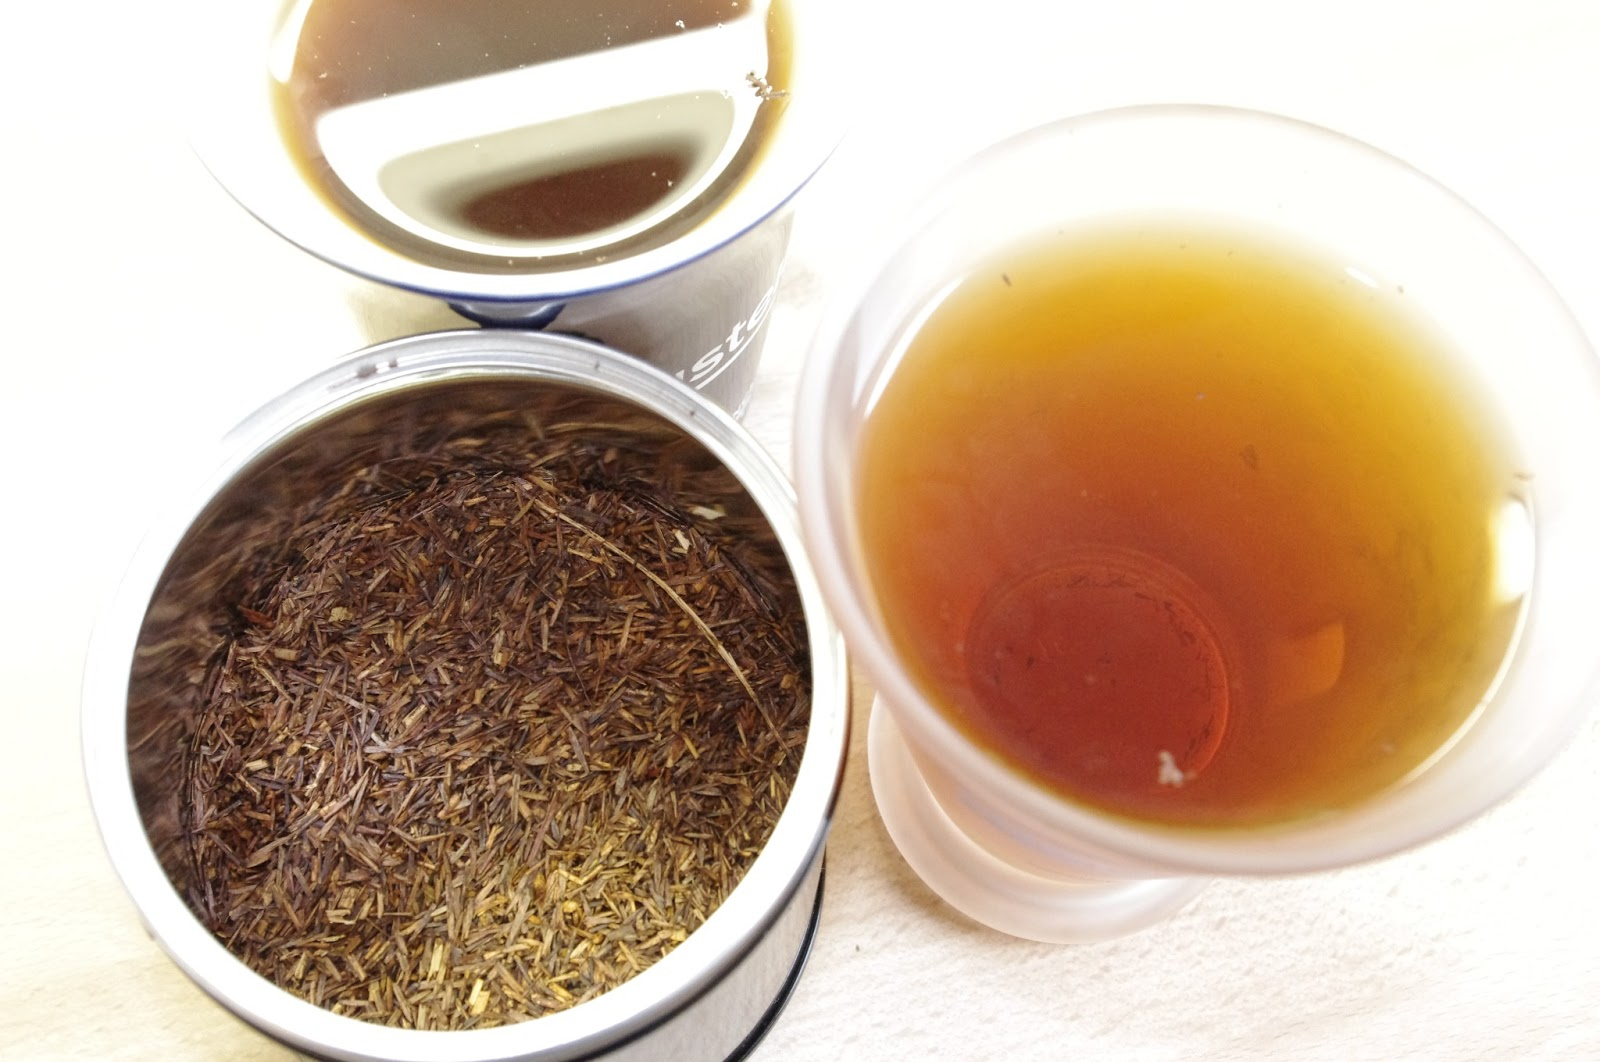 mariage freres marco polo rouge rooibos cliquez pour agrandir - Mariage Freres Marco Polo